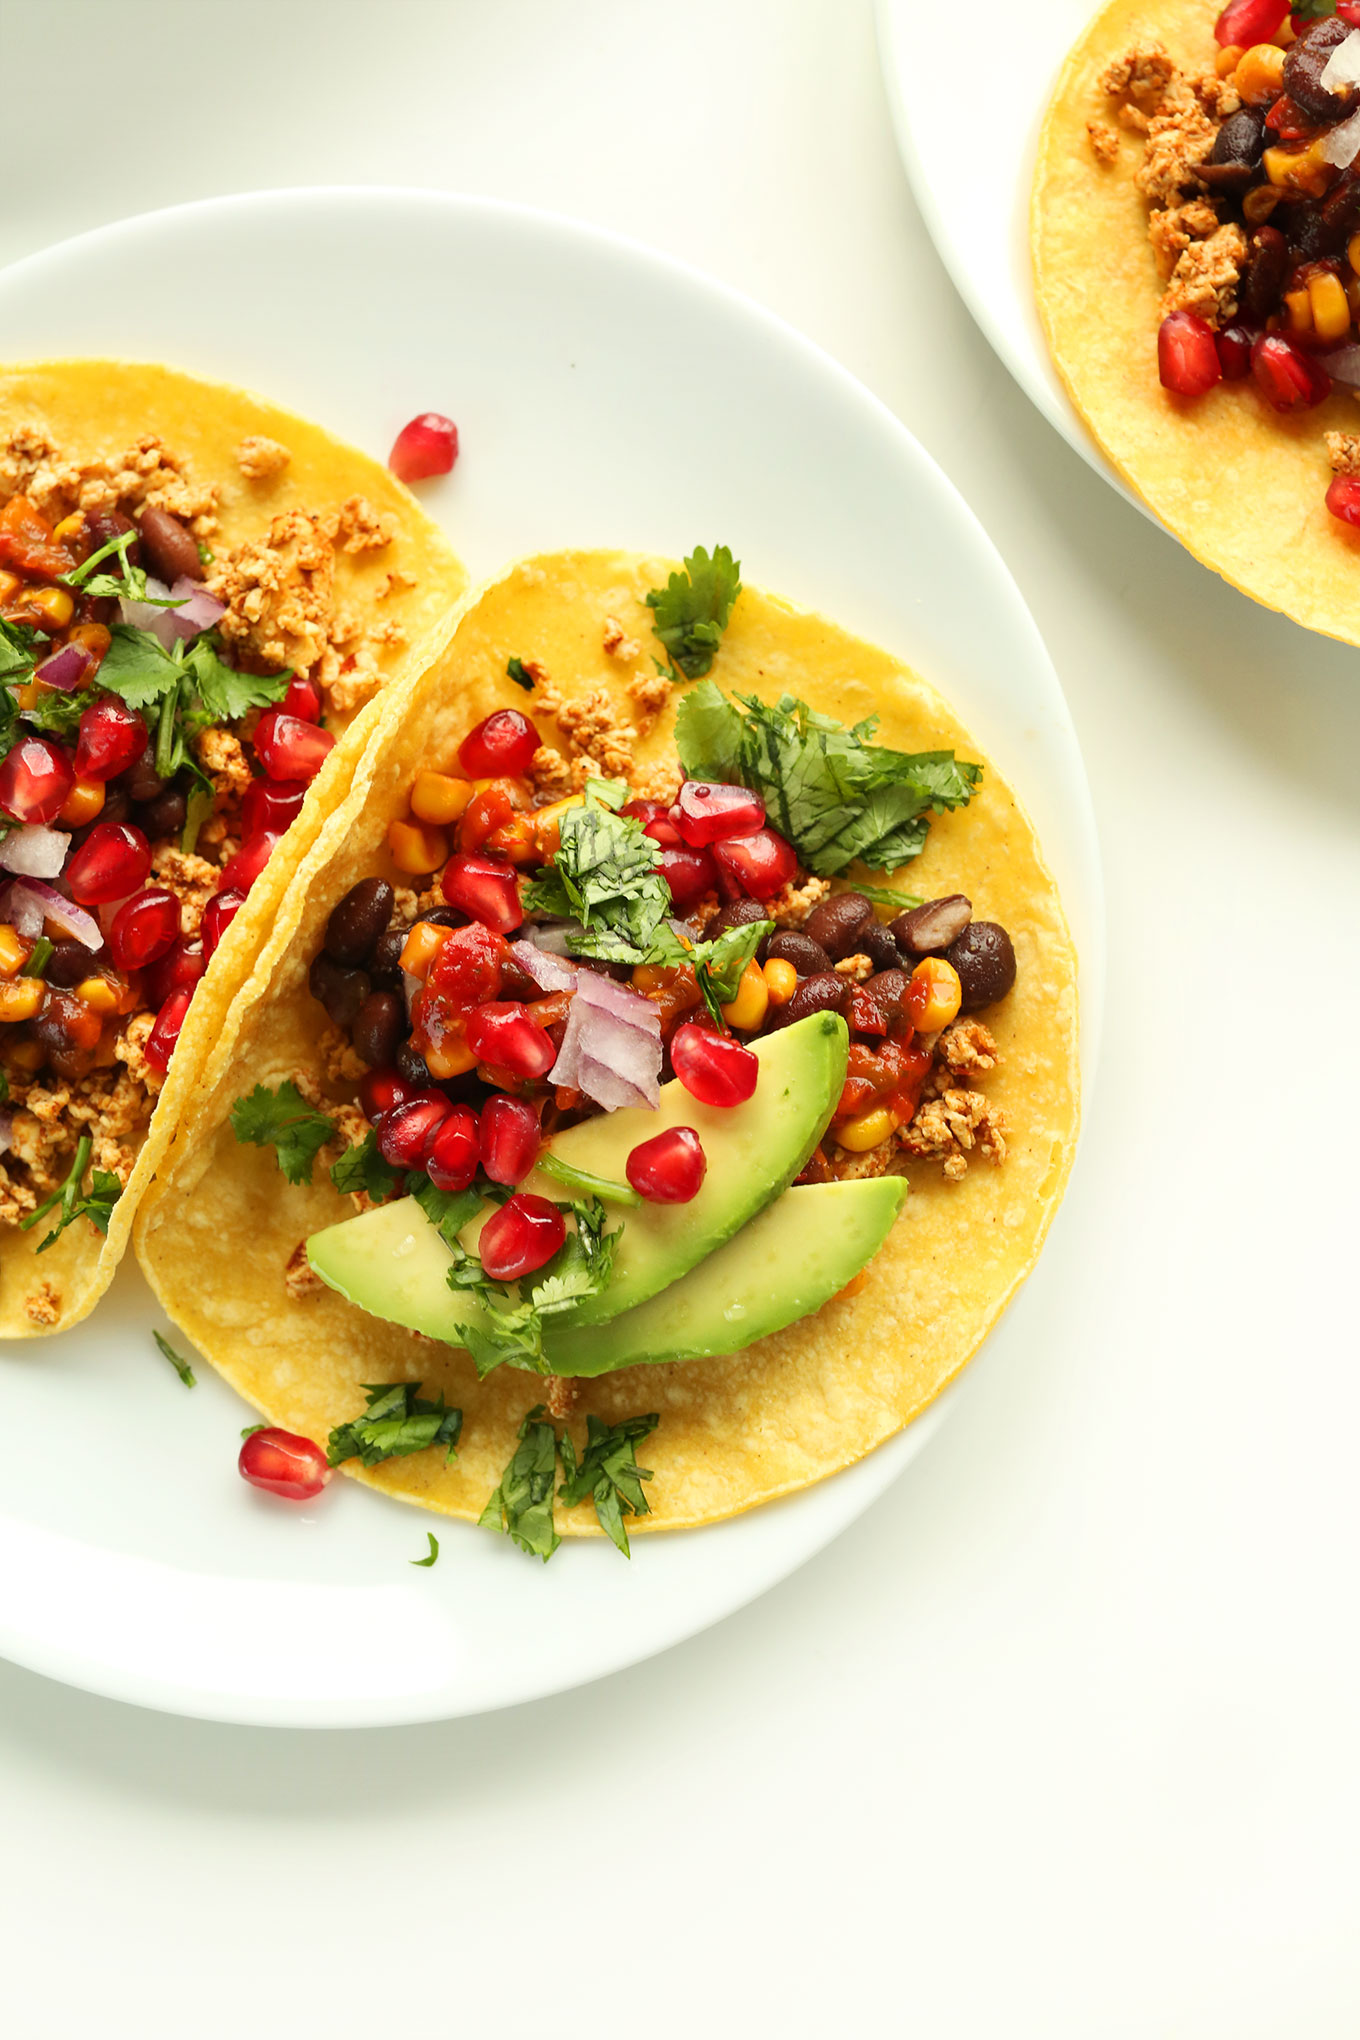 Close up shot of vegan breakfast tacos made with spicy tofu, black beans, fruit, and veggies